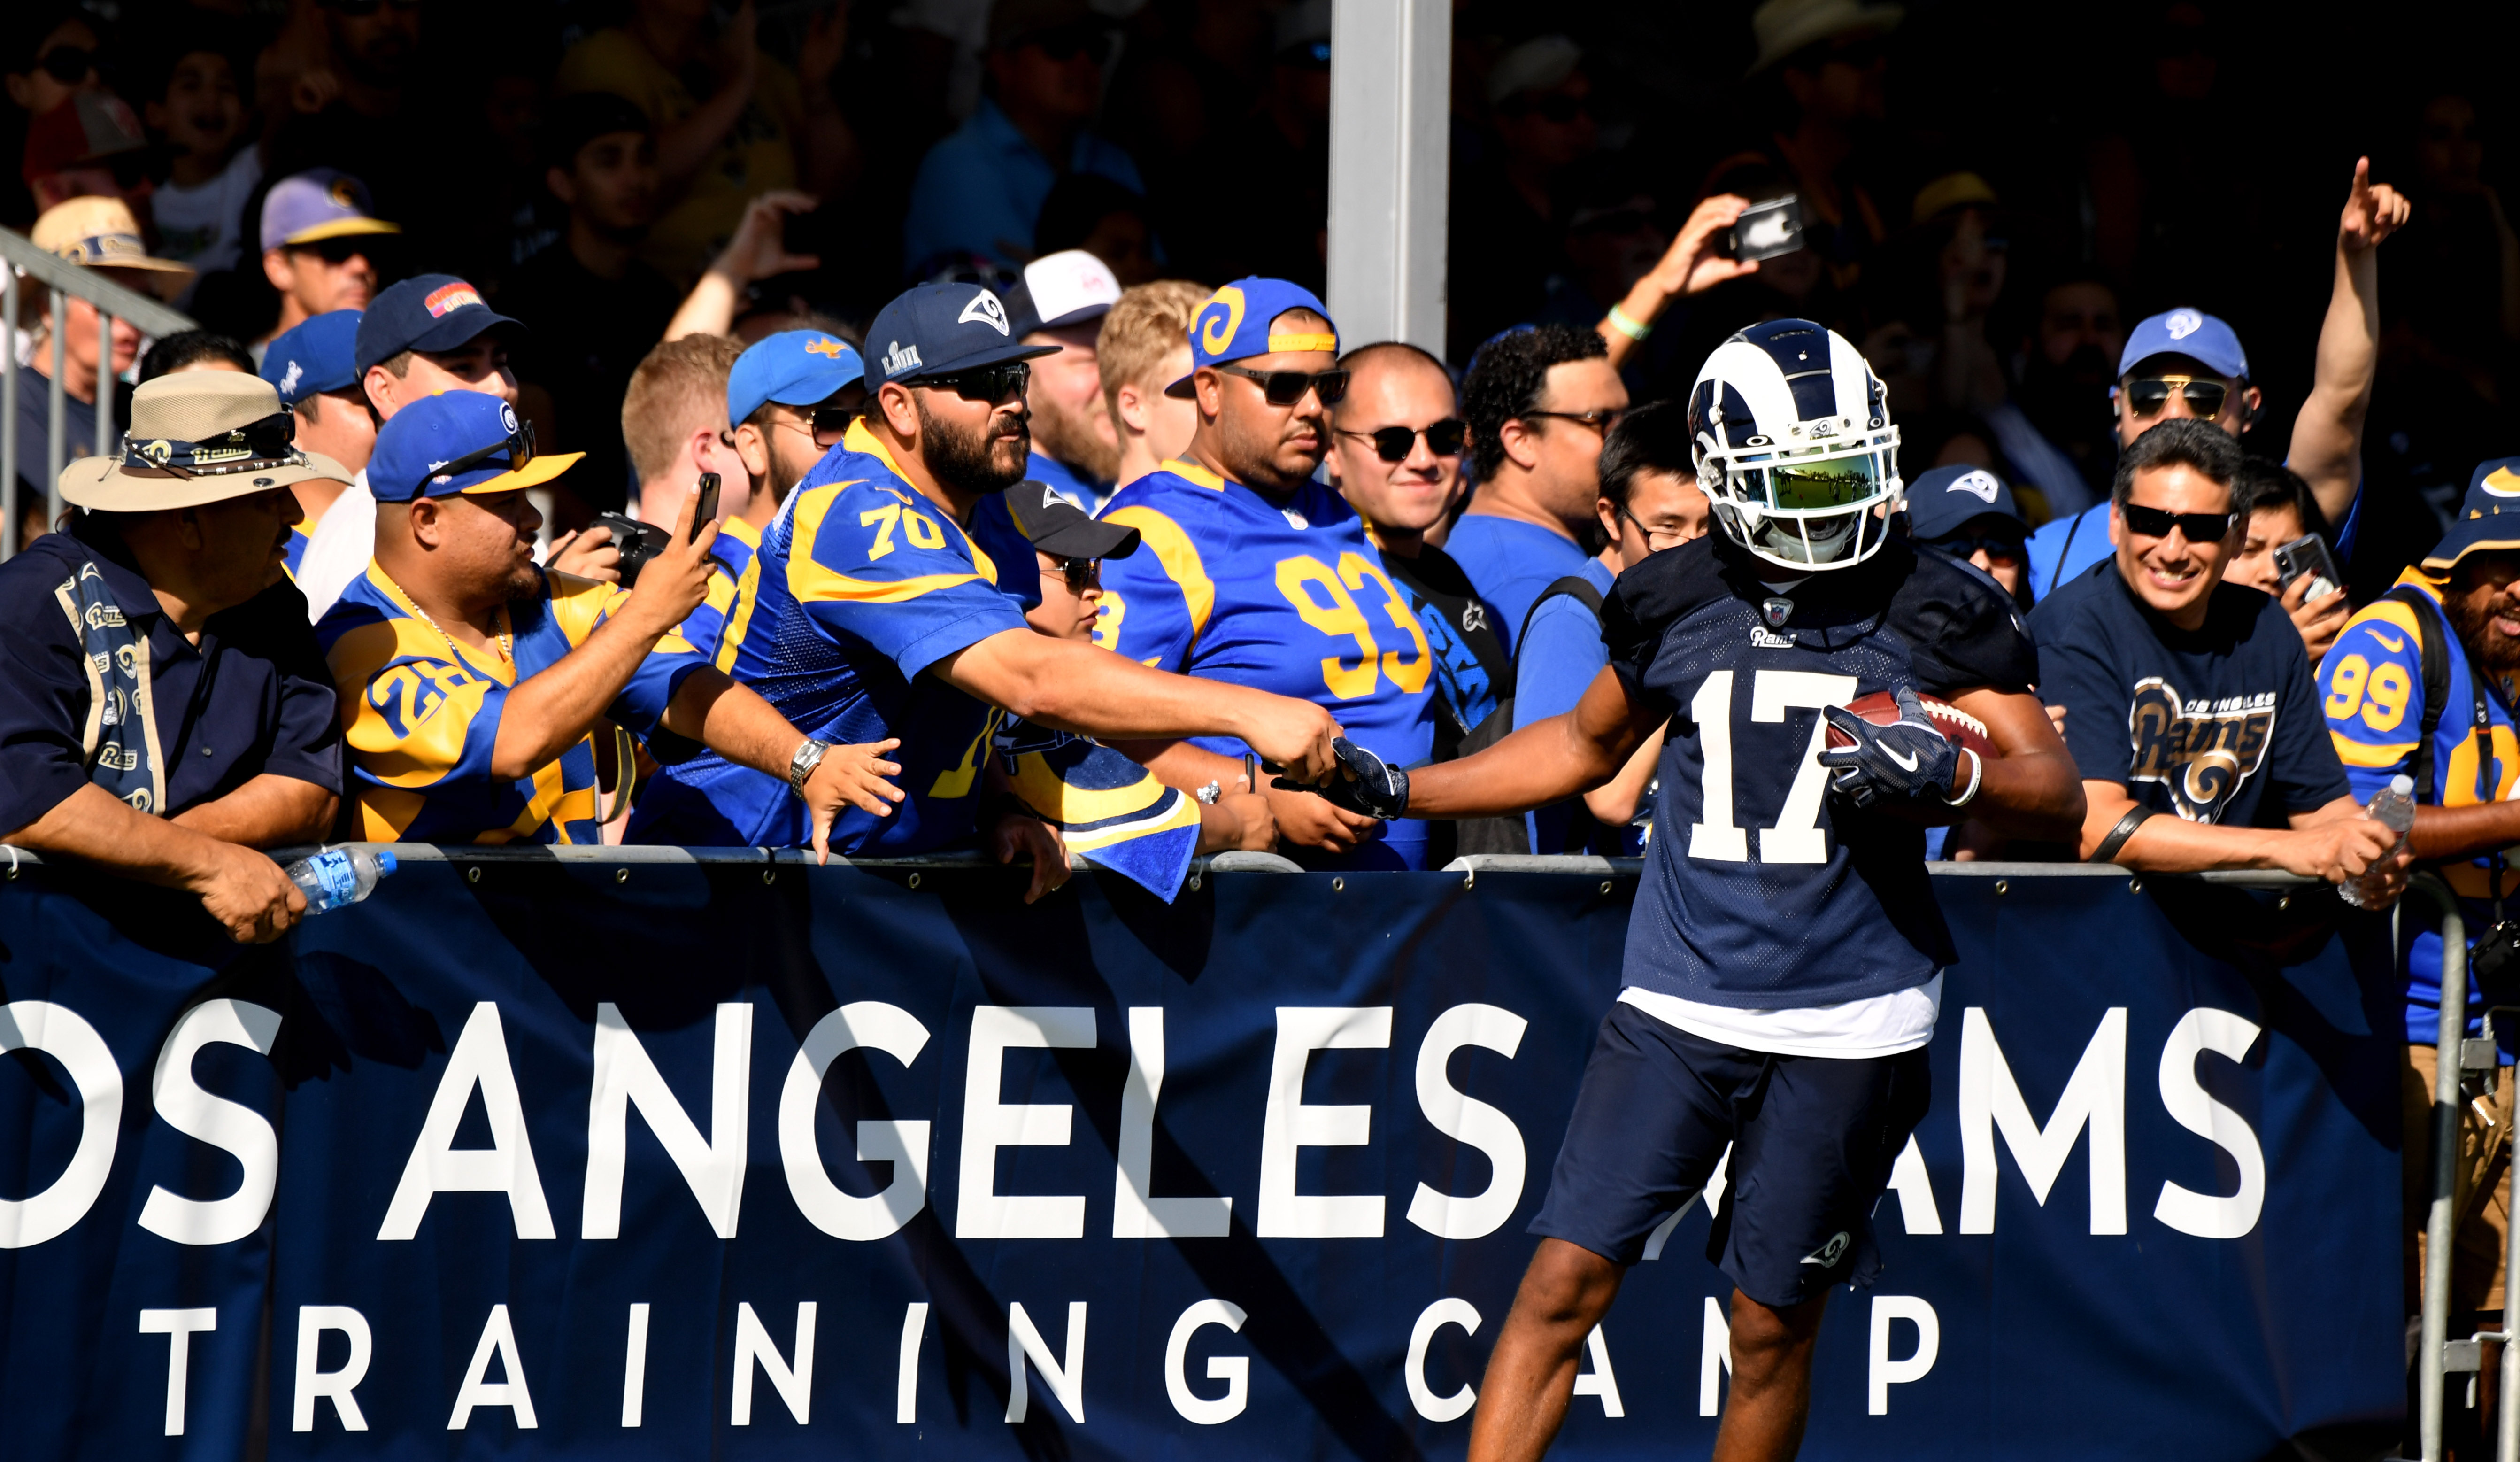 Los Angeles Rams WR Robert Woods high fives fans after a catch during training camp, Jul. 27, 2019.